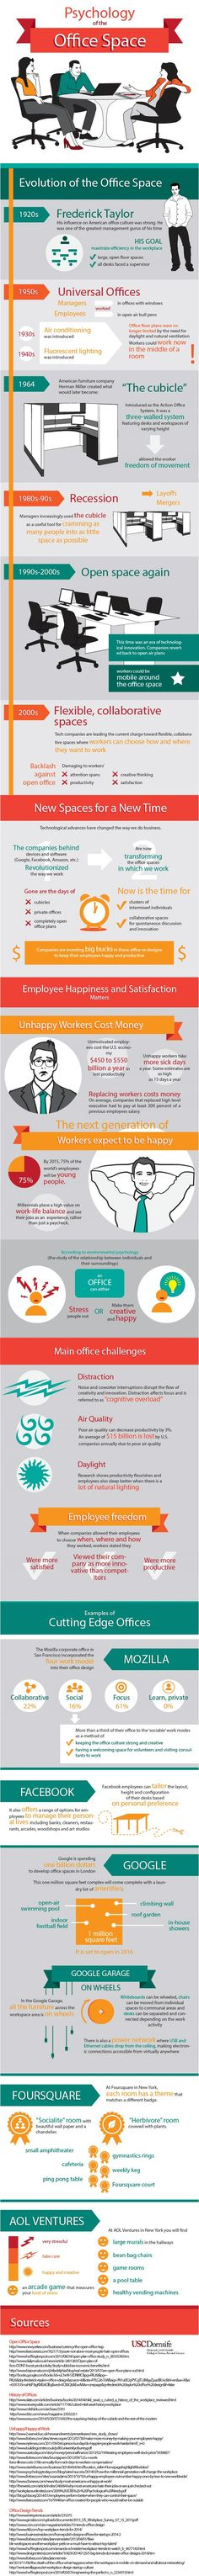 """Office design trends come in and out of fashion quicker than one can say """"treadmill desk"""", but there's a good reason why managers are always obsessing about ways to improve their work spaces; it turns out that an office space can have a huge psychological impact on employees.  When creating an office layout, lighting, ventilation, and"""